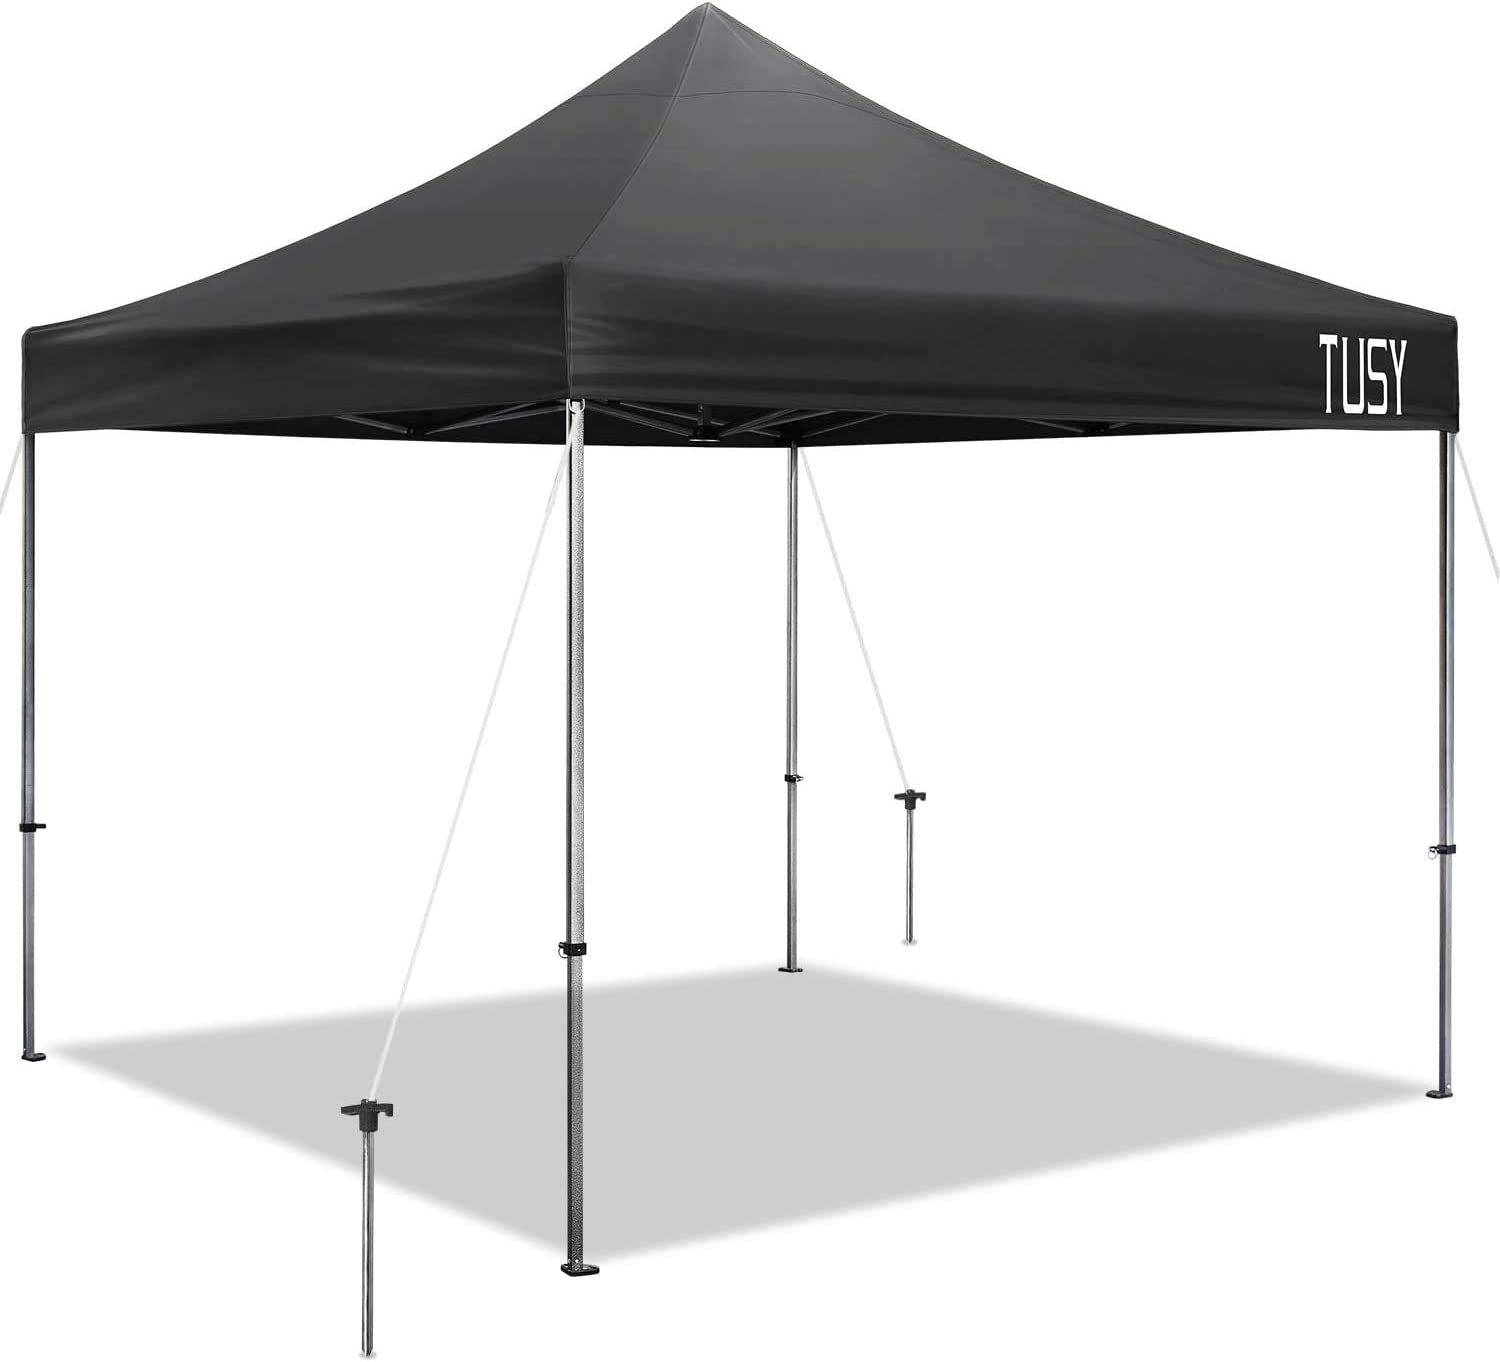 Details about Instant Pop Up 4 X 6 Canopy Sturdy Frame Outdoor Picnic Portable Shade Tent